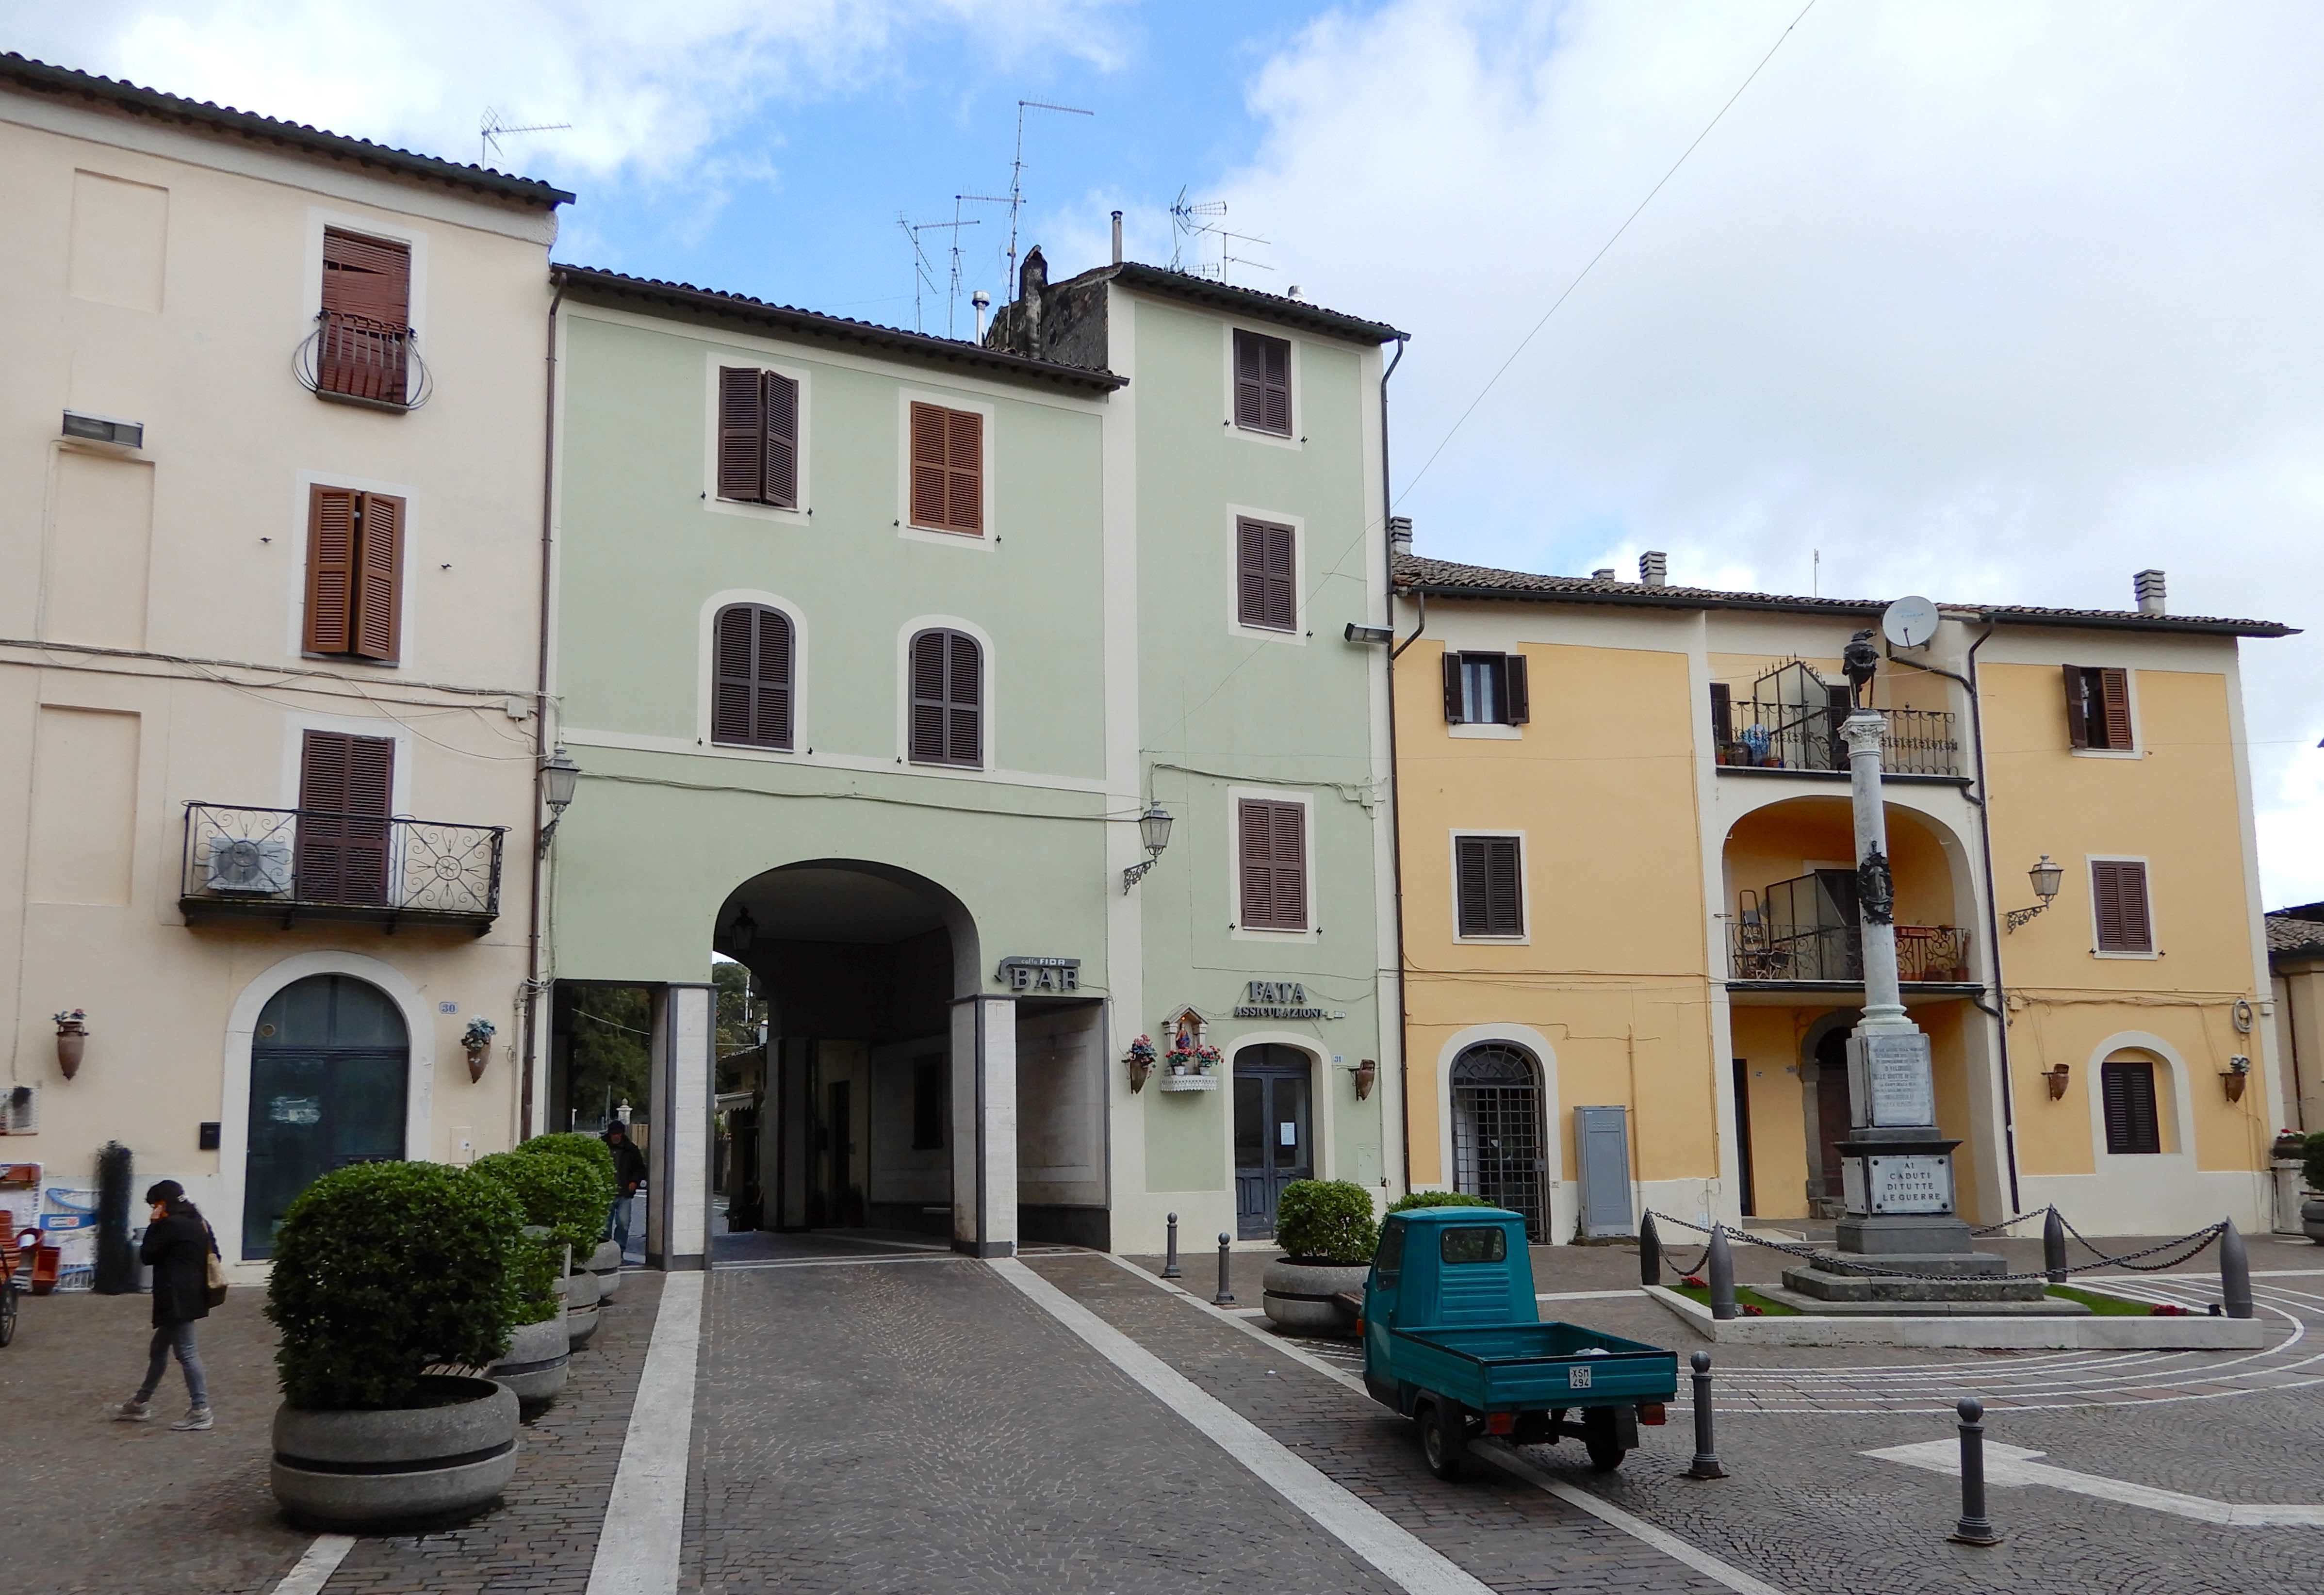 5.Piazza Cavour